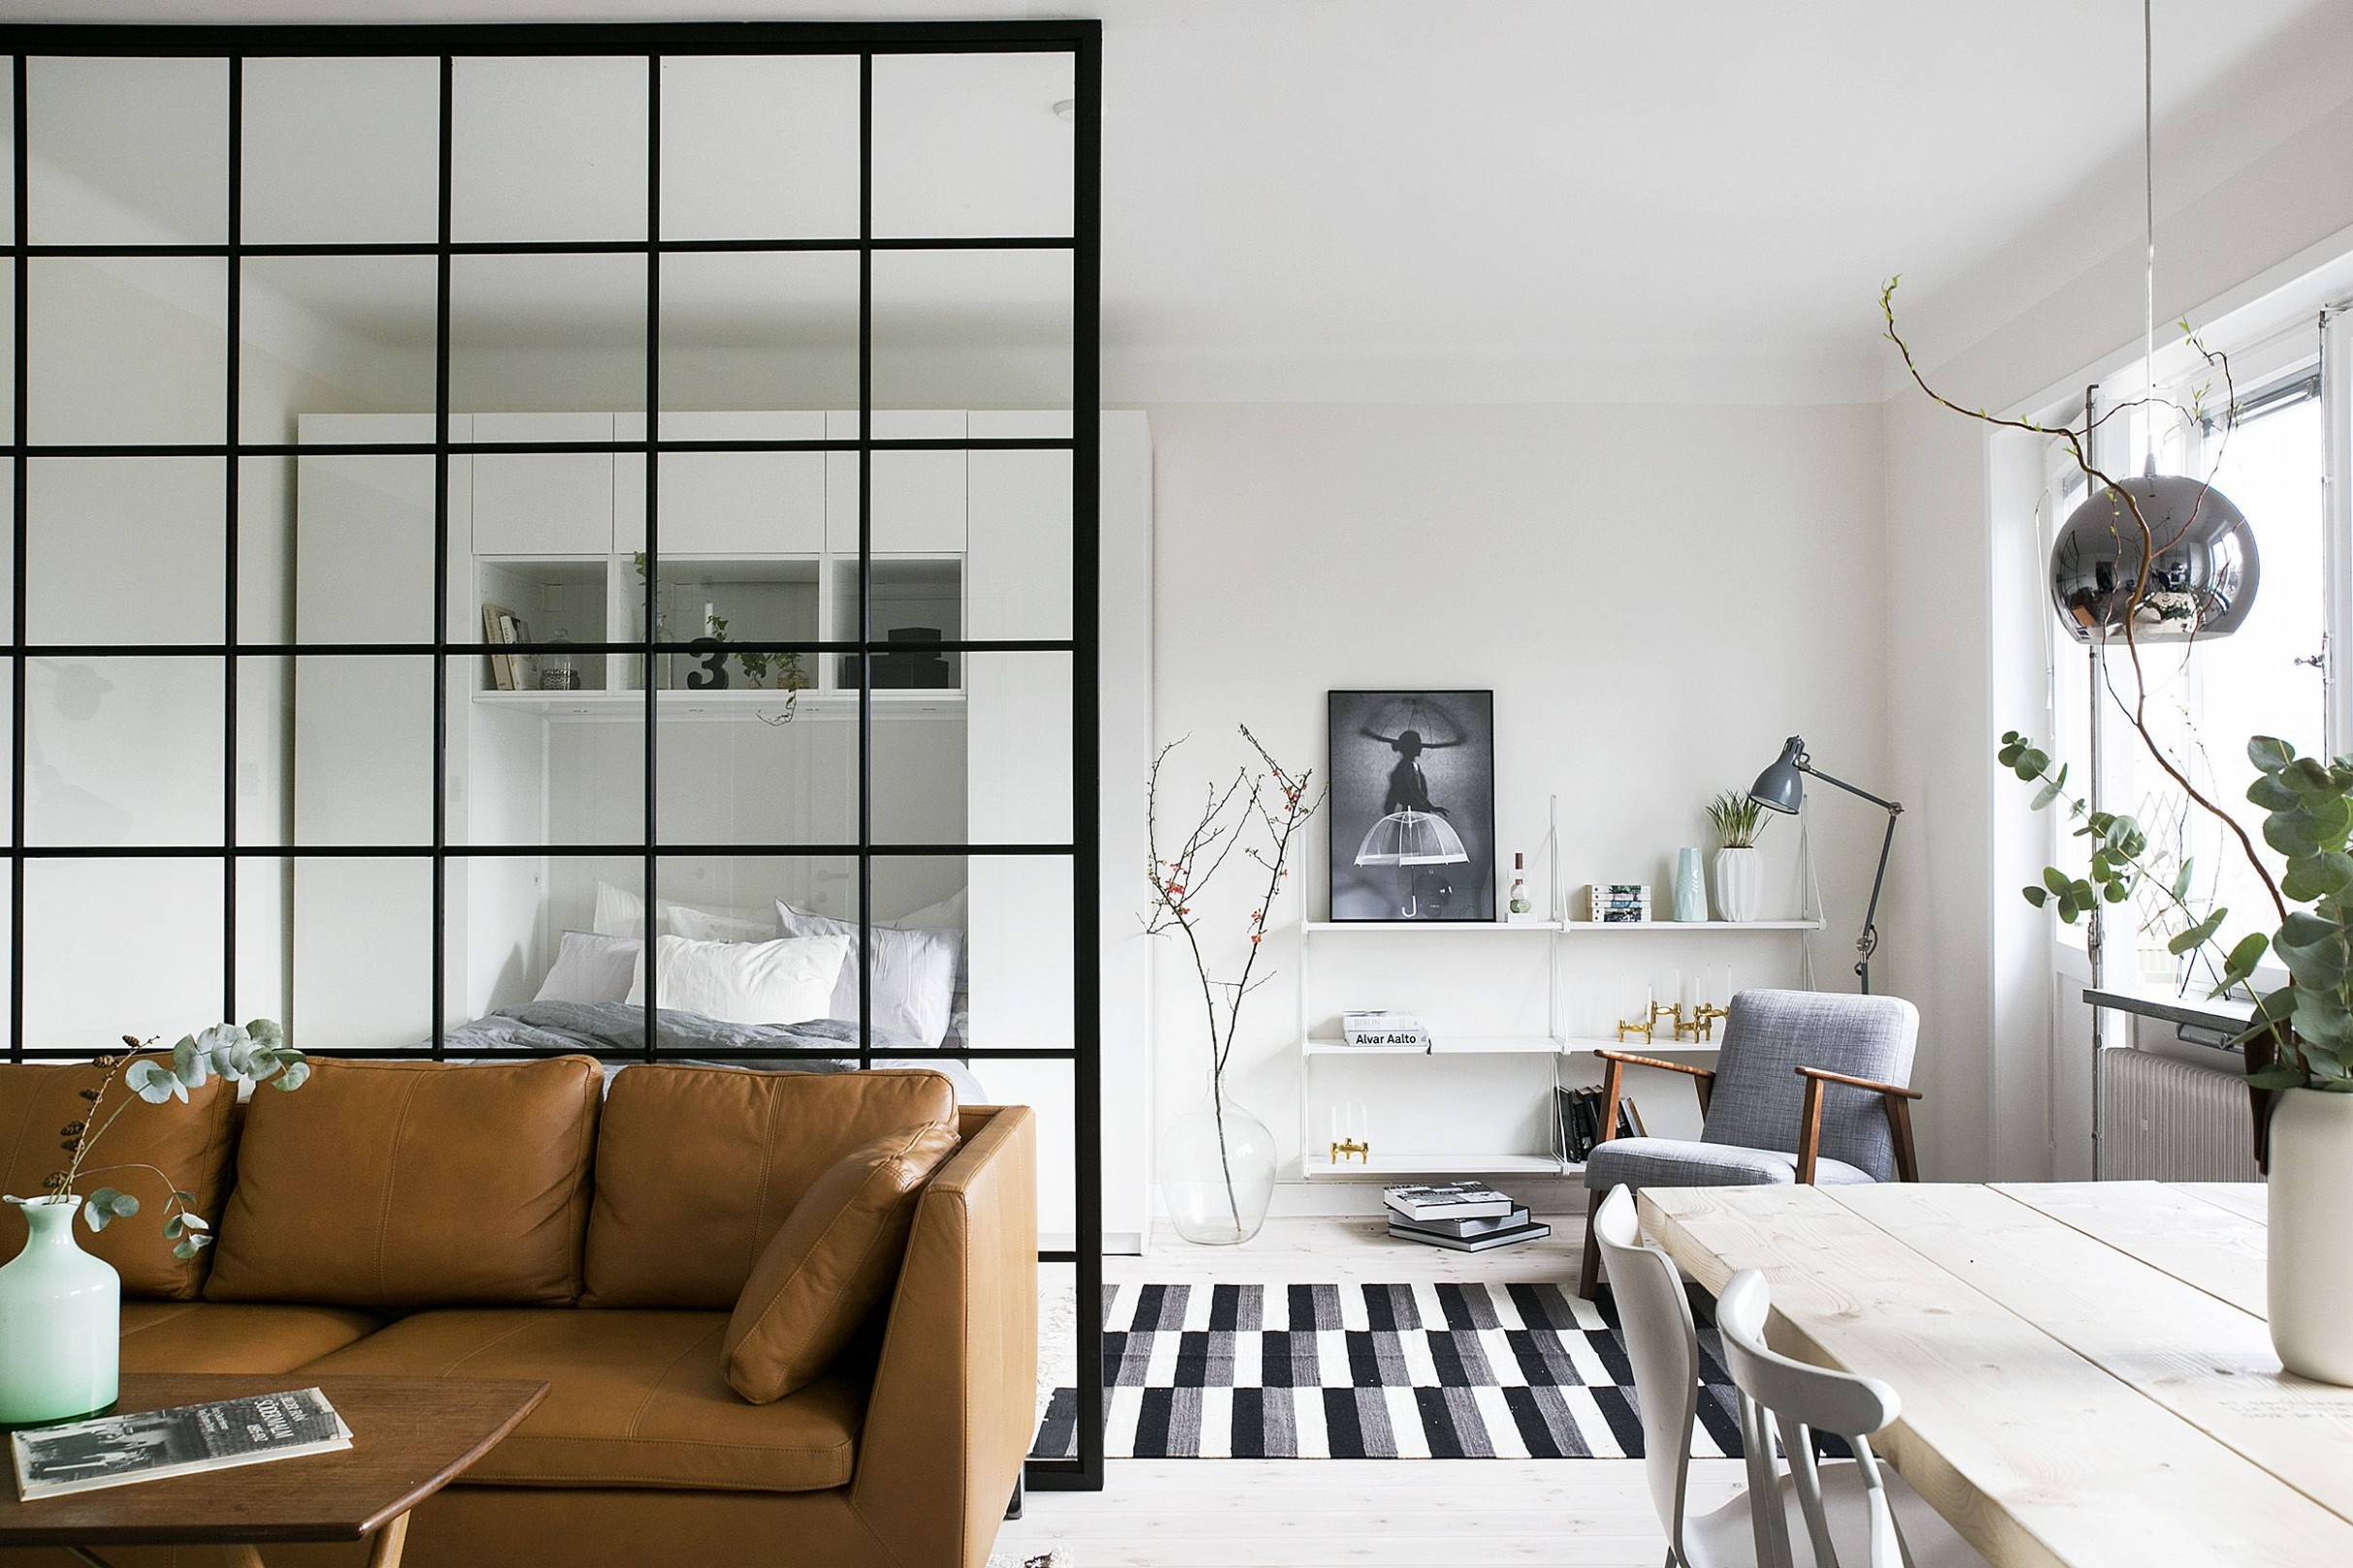 12 Small House Interior Design Ideas - How to Decorate a Small Space - Apartment House Design Ideas